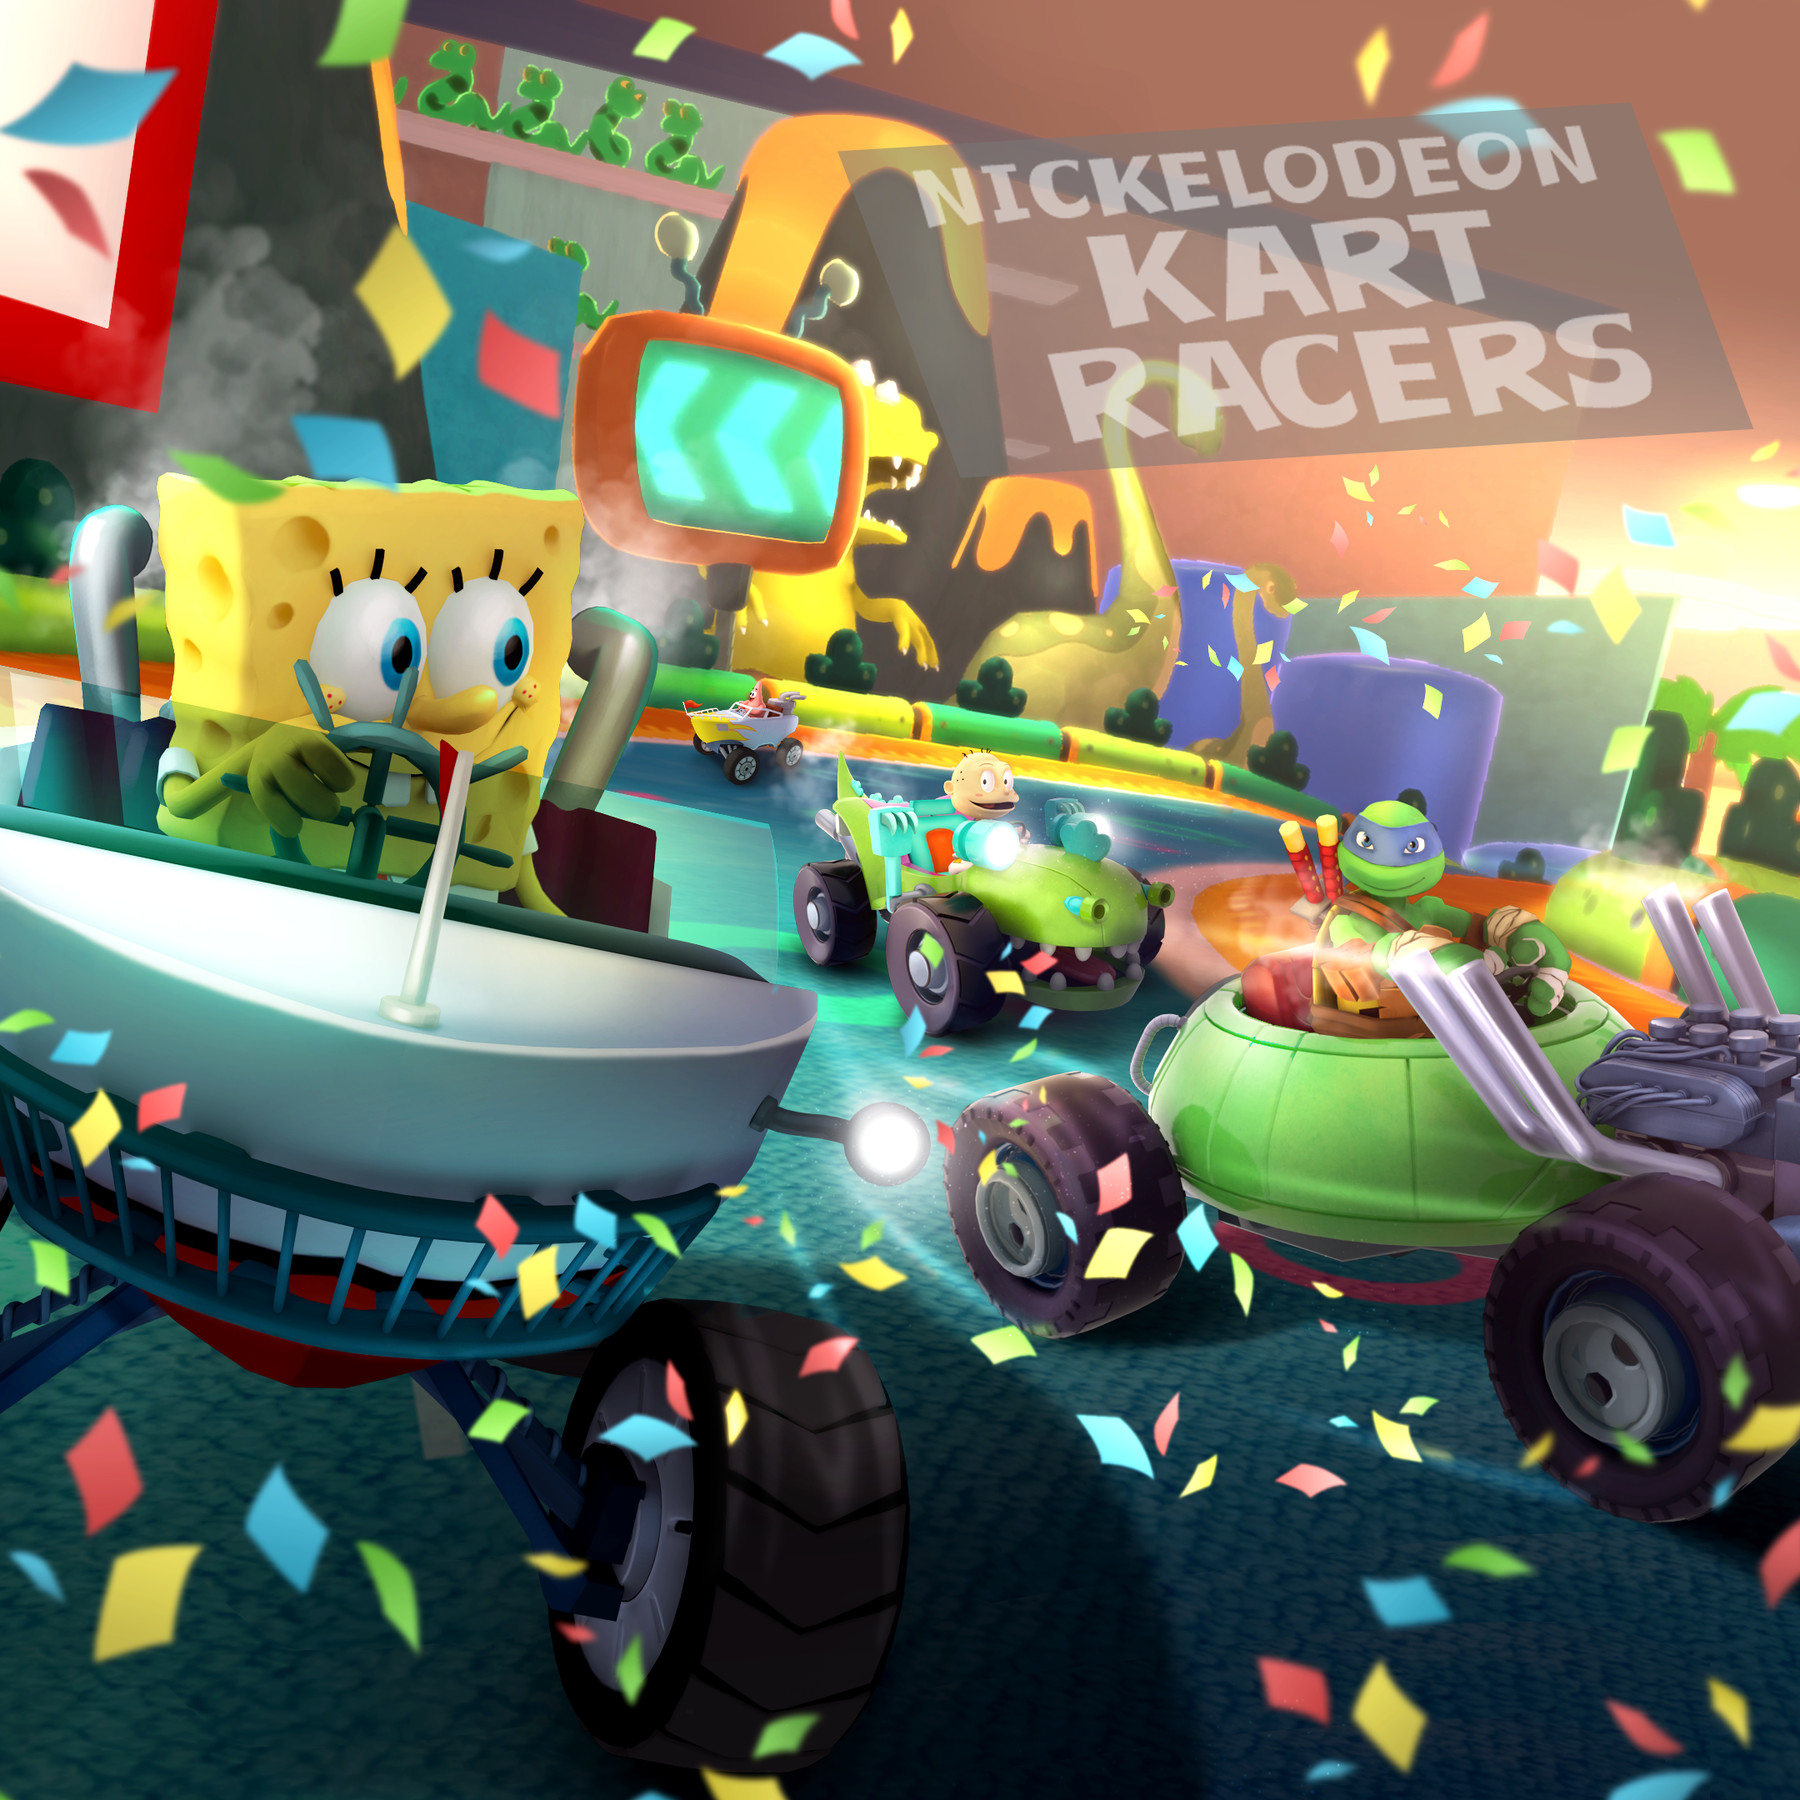 Nickelodeon Kart Racers reunites classic cartoons on consoles this     Nickelodeon Kart Racers reunites classic cartoons on consoles this fall    Polygon